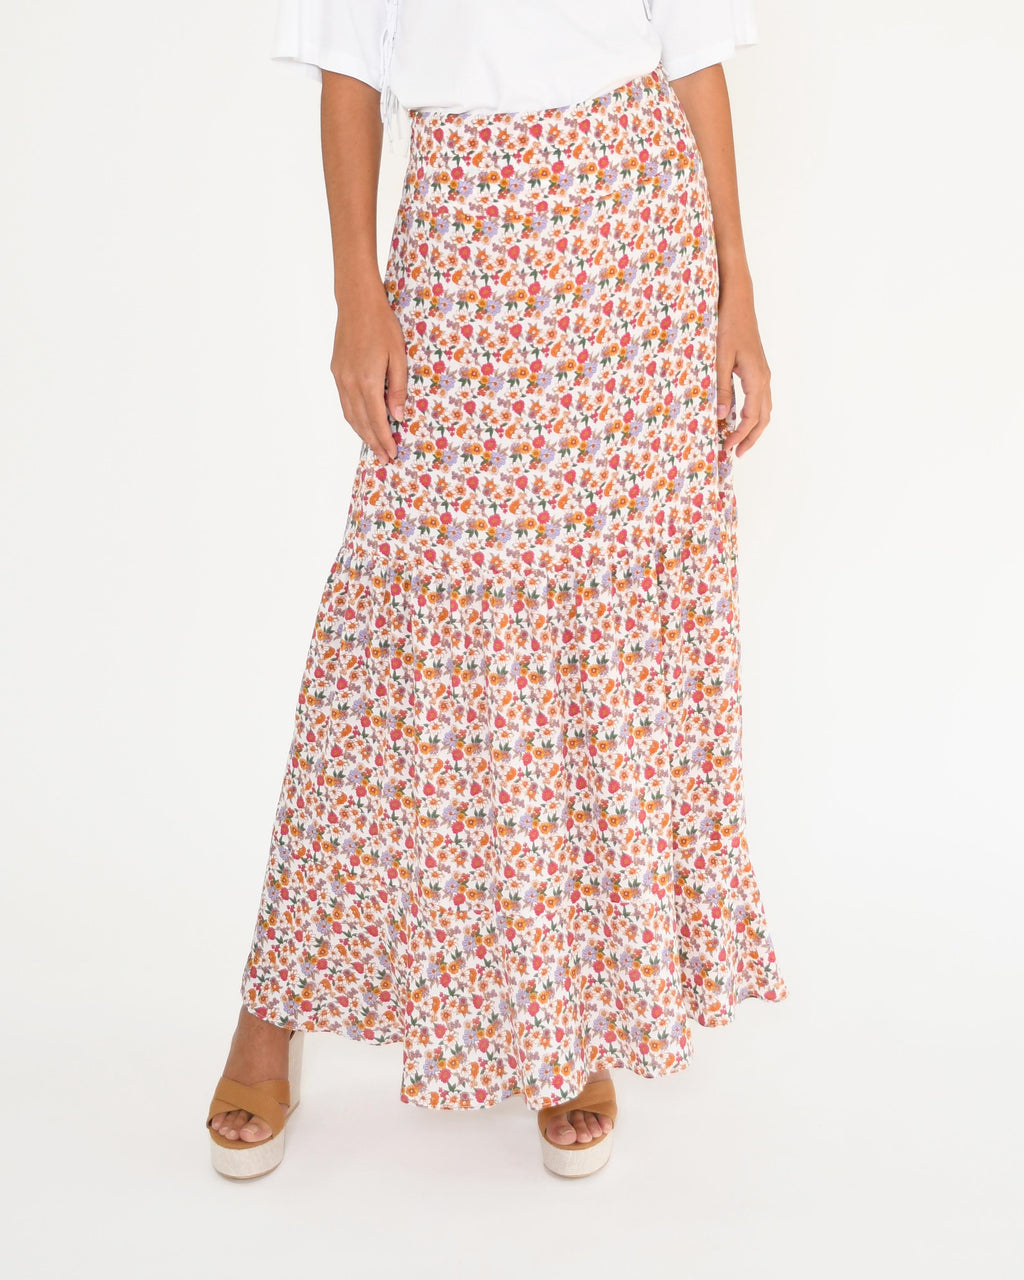 CS18931 - SUNSHINE PARADISE MAXI SKIRT - bottoms - skirts - This ankle length maxi skirt features our bold sunshine paradise print throughout. This stunning skirt features a smocked waist and is crafted from lightweight cotton. Add 1 line break Stylist Tip: Style with strappy sandals.